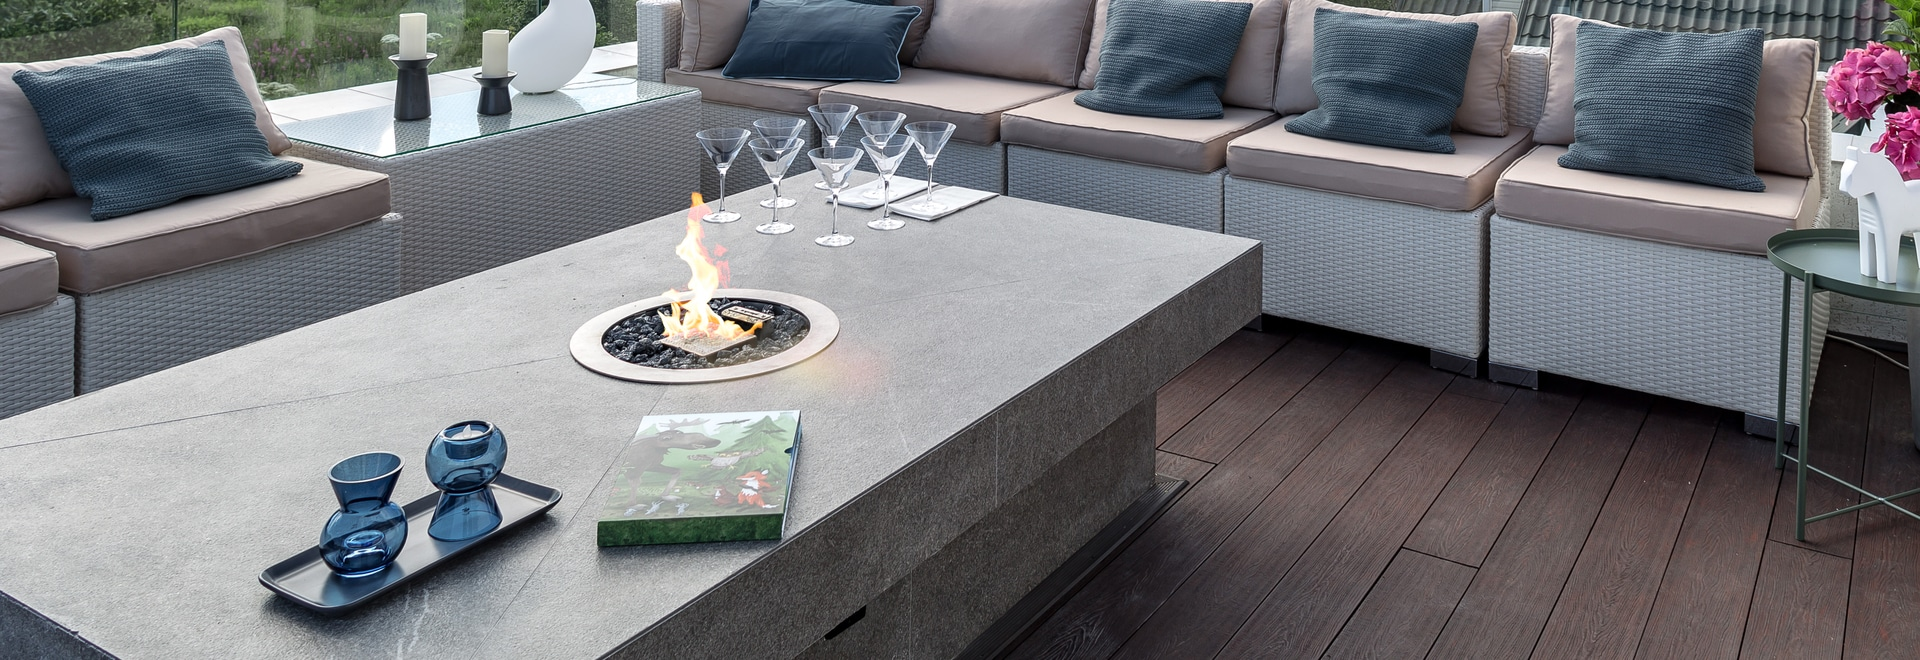 Galio Fire Pit Insert - Gas Outdoor fireplace by Planika